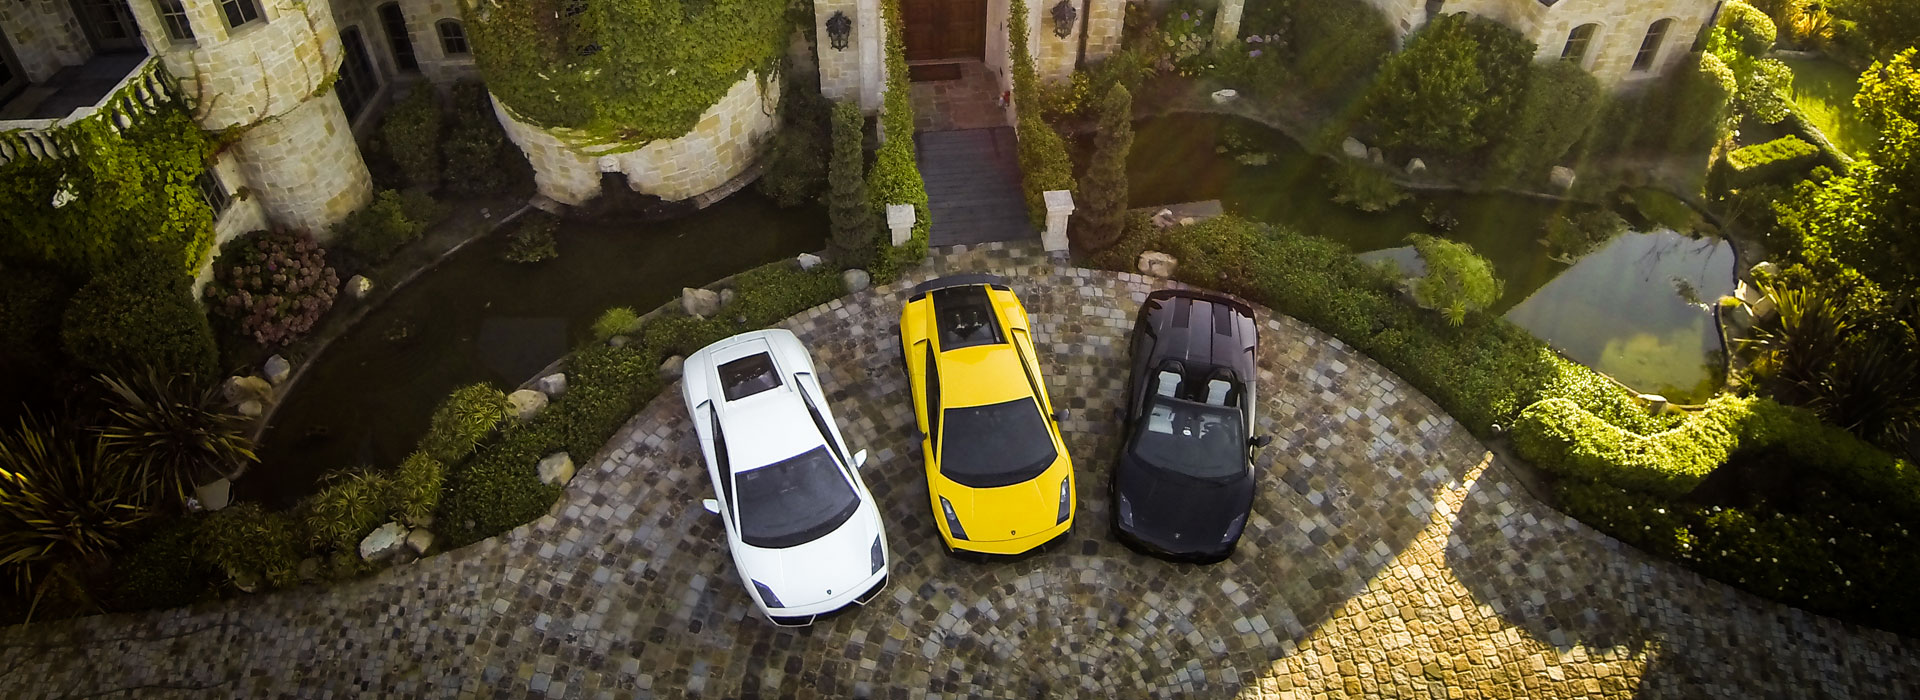 aerial_photography_slider_lamborghini_01